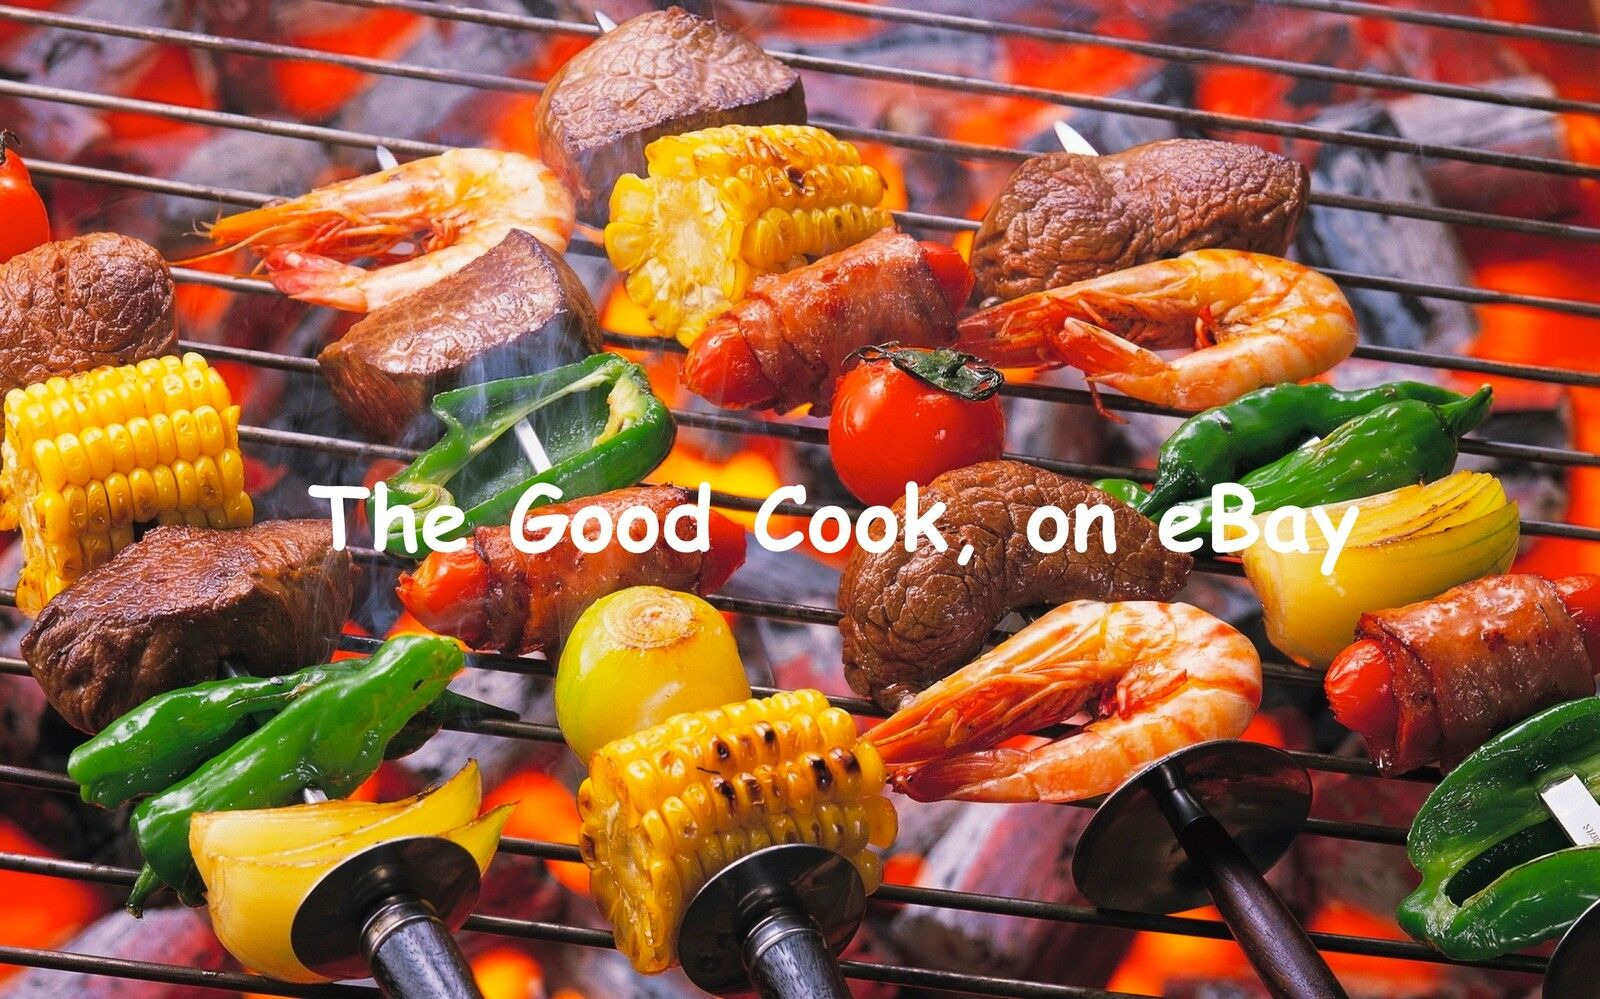 Welcome to The Good Cook, on eBay